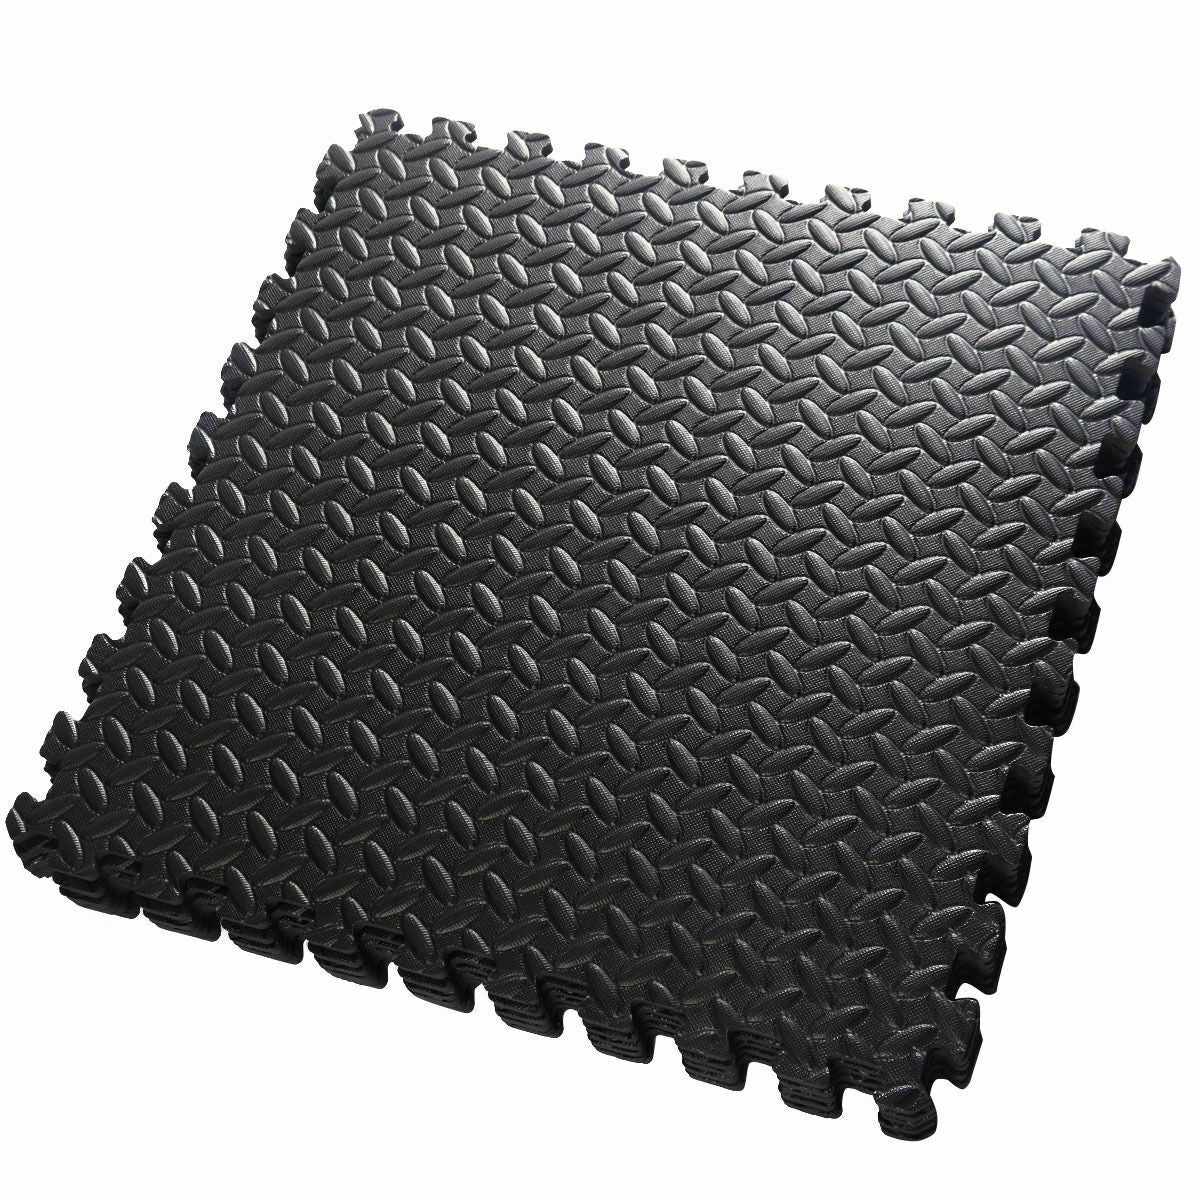 EVA Foam Floor Interlocking Mat - 48 Sq Ft - Uplift Active